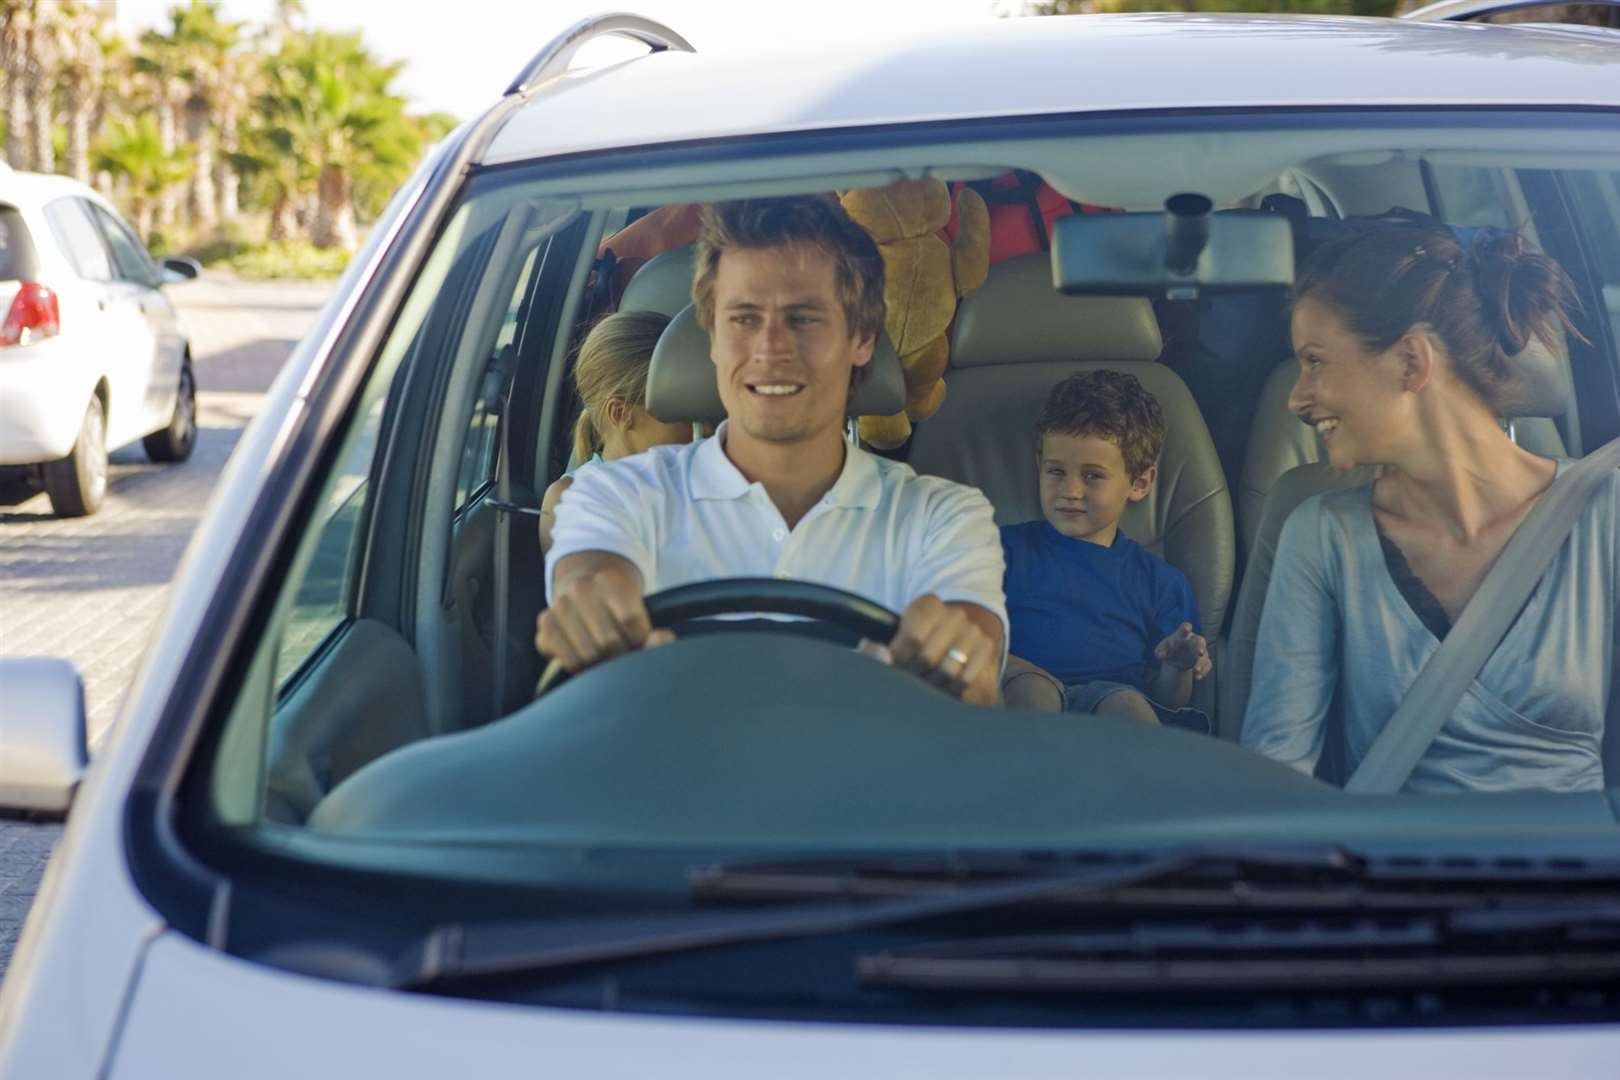 Does your trip require an International Driving Permit since January 1?